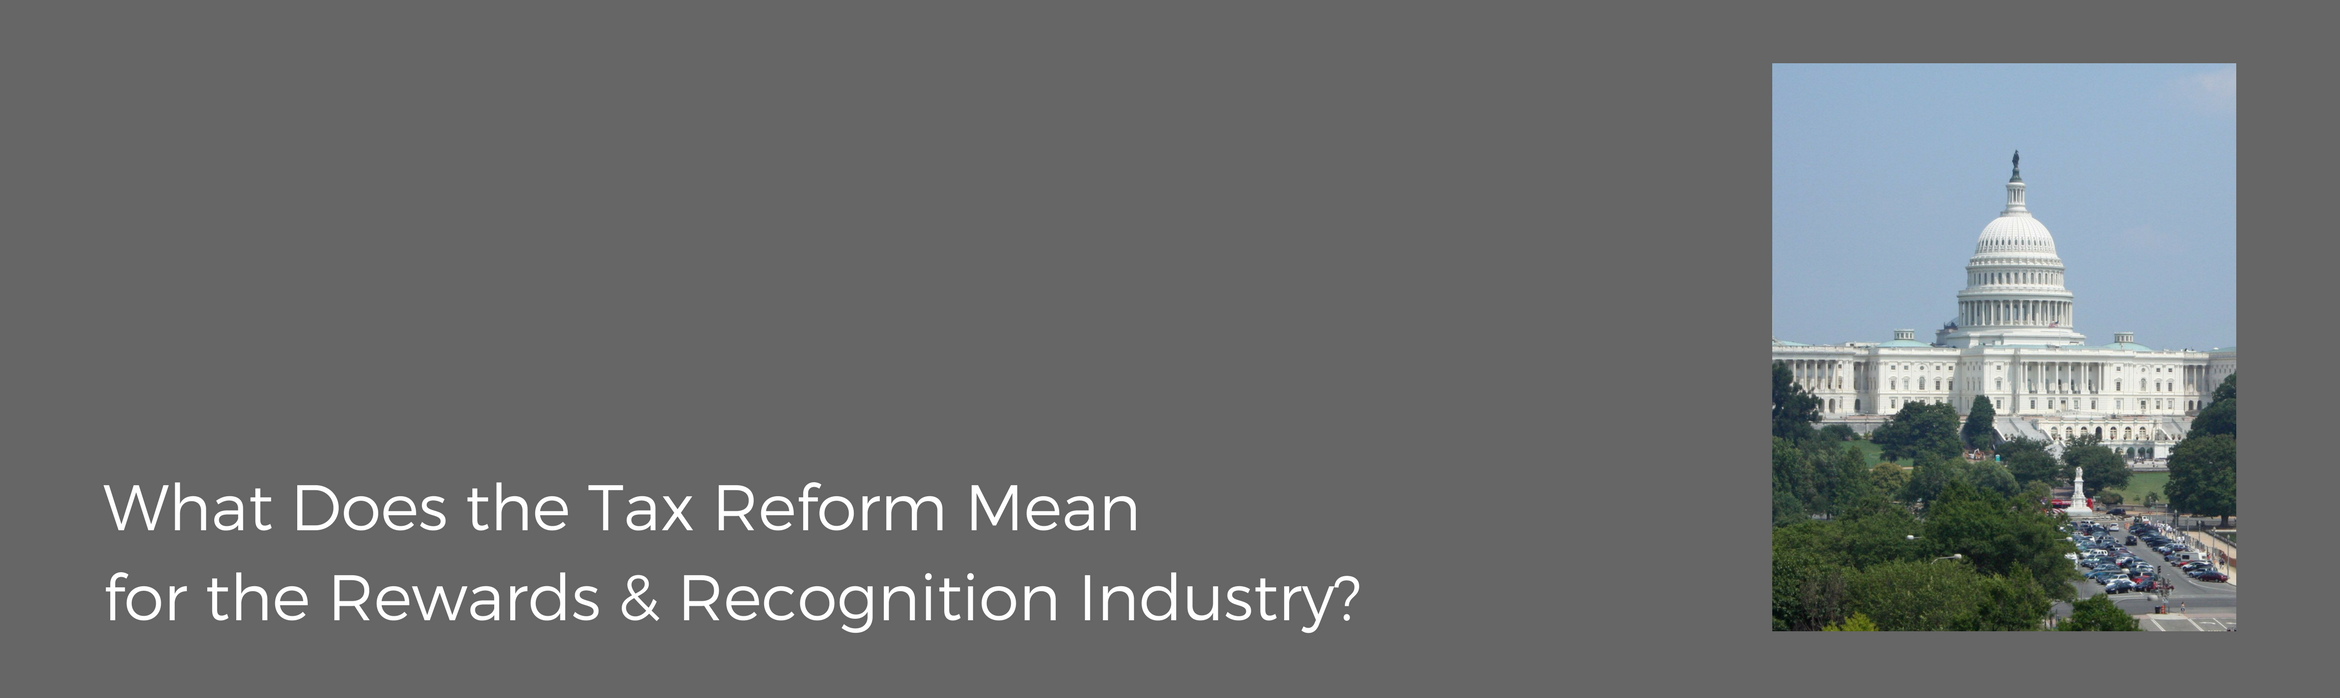 What Does the Tax Reform Mean for the Rewards & Recognition Industry?